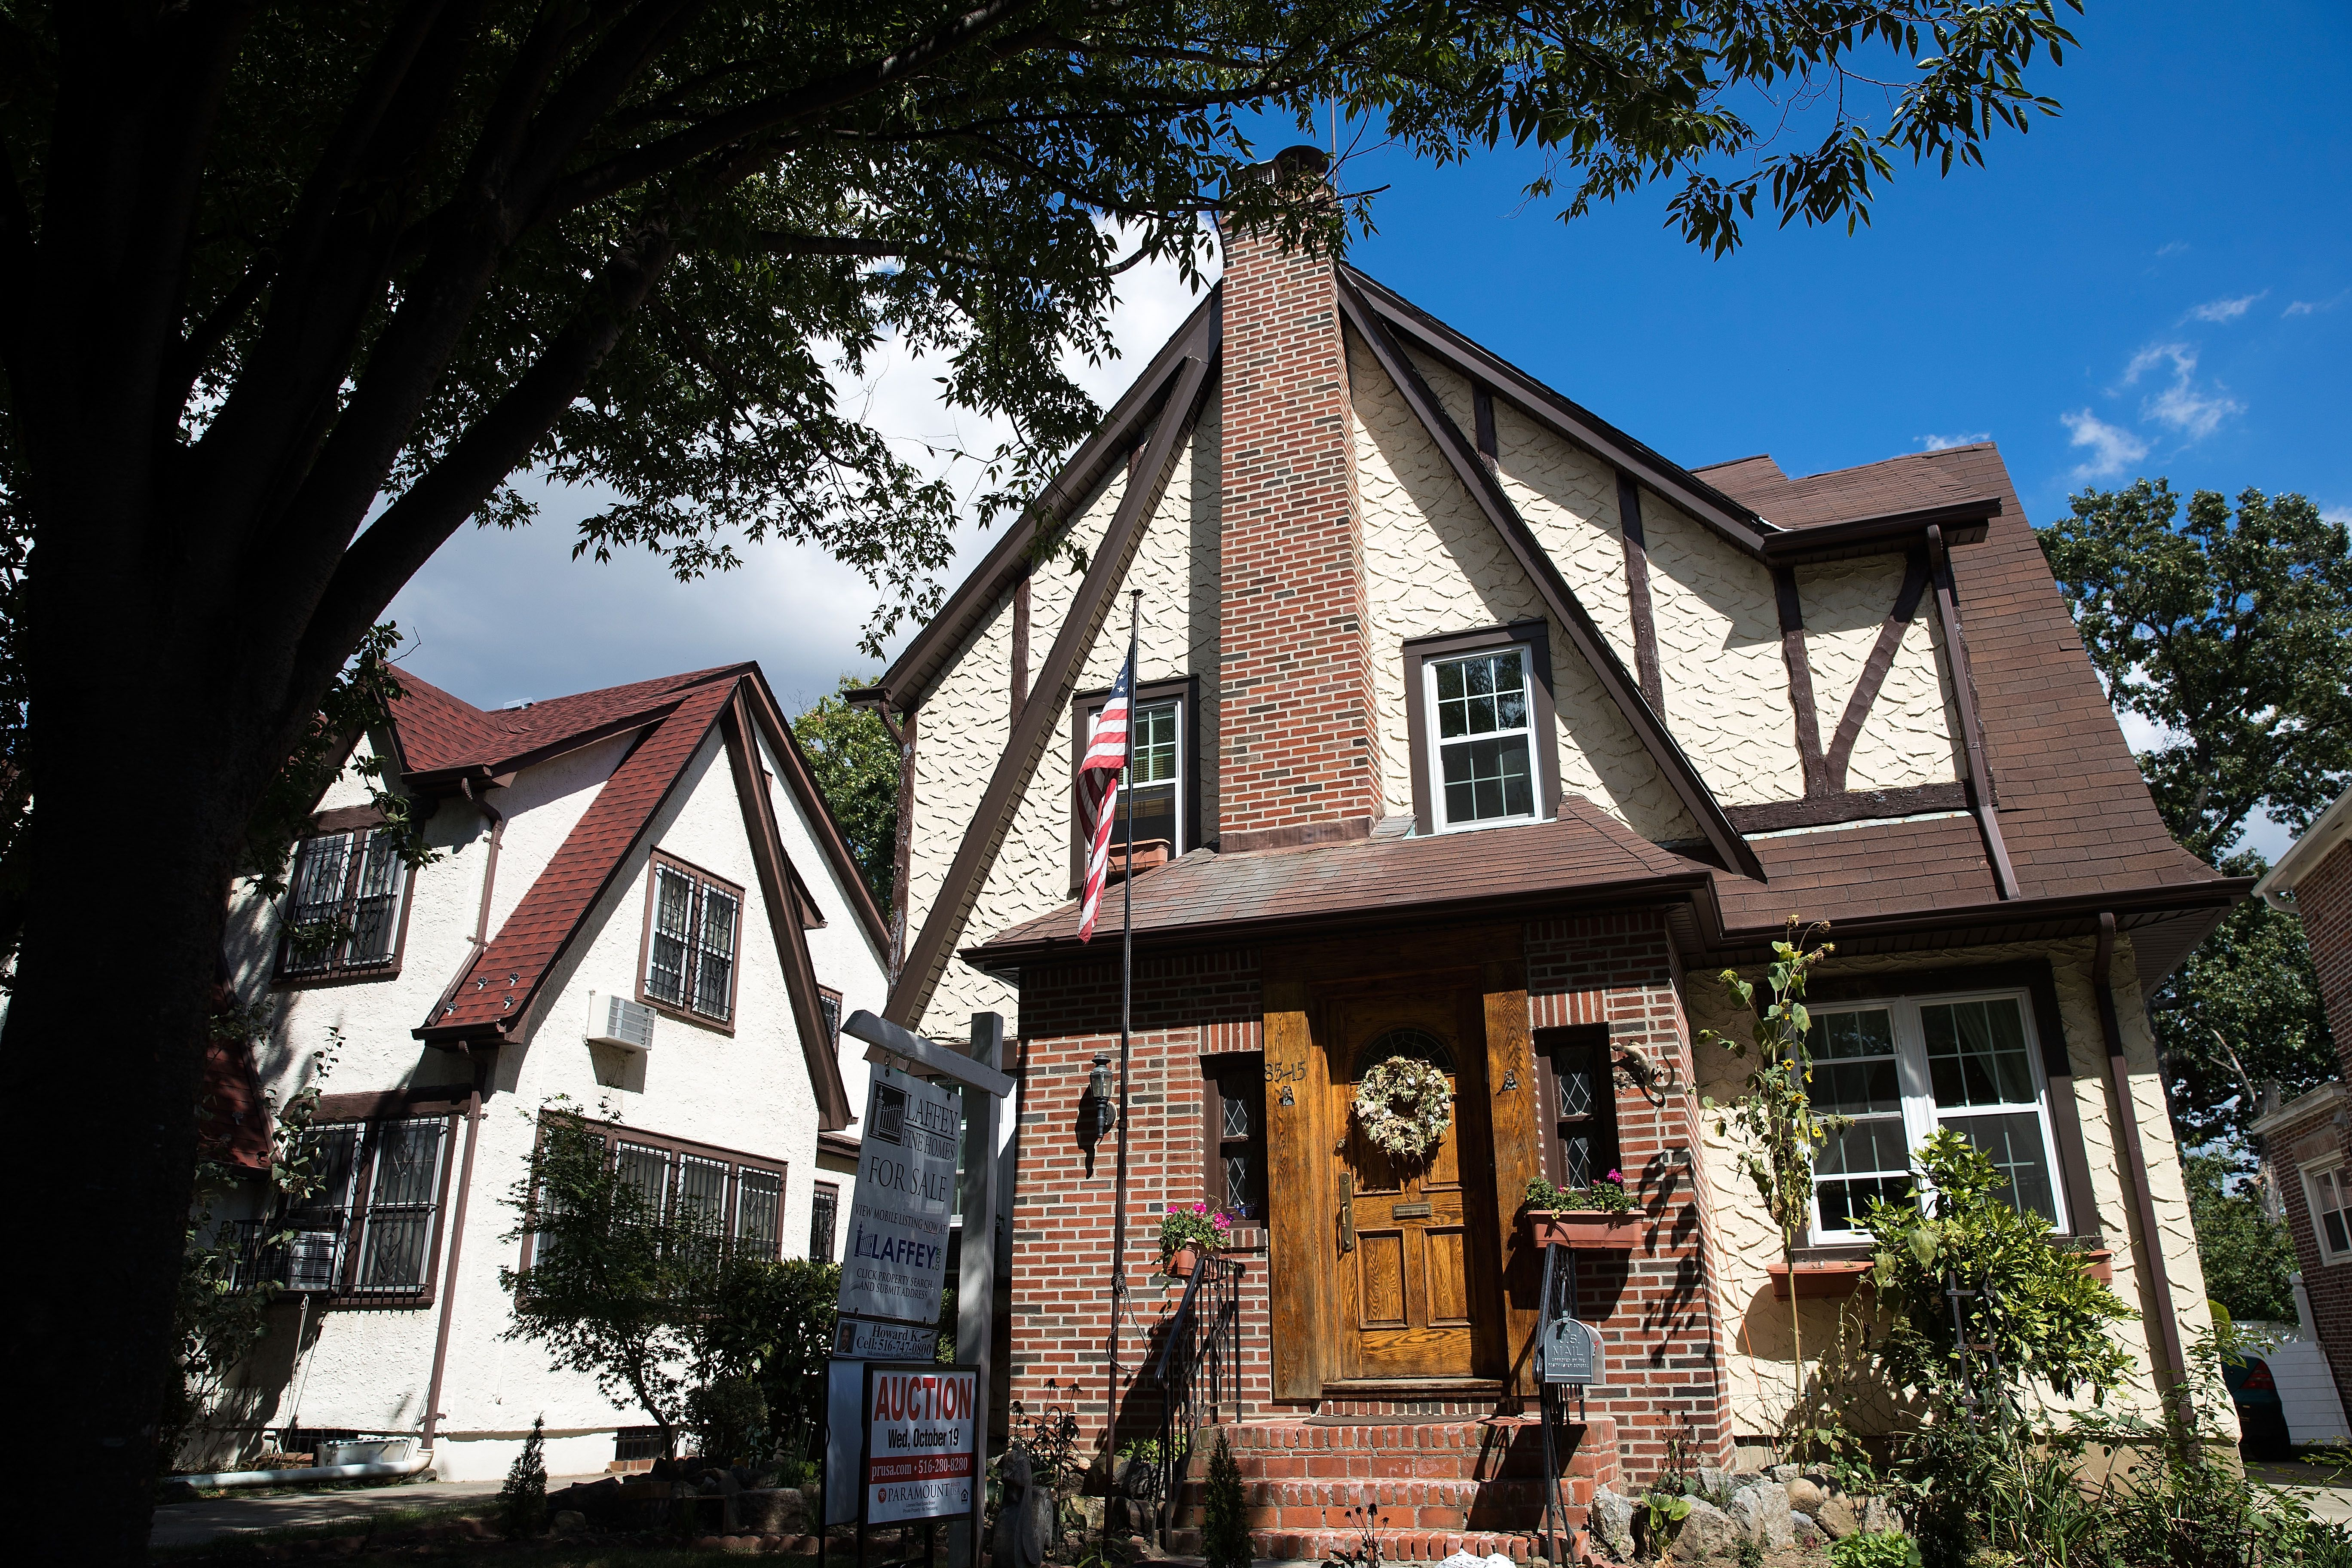 neighborhood home with Tudor details - half-timber work, pale yellow stucco, complicated roof lines, front chimney rising from a one-story brick front entryway